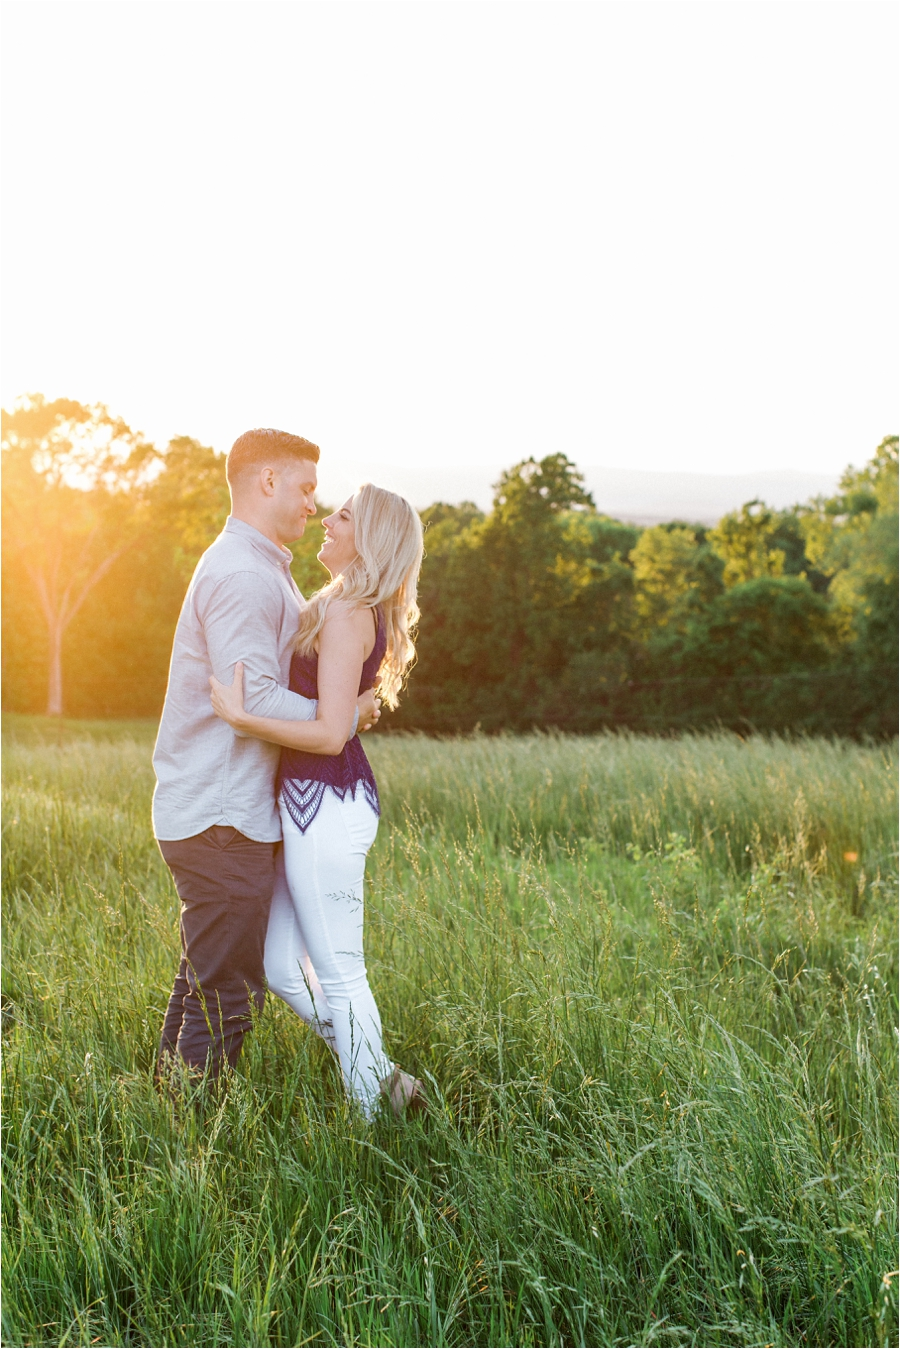 spring engagement session at market at grelen bloomfield by charlottesville wedding photographer, amy nicole photography_0045